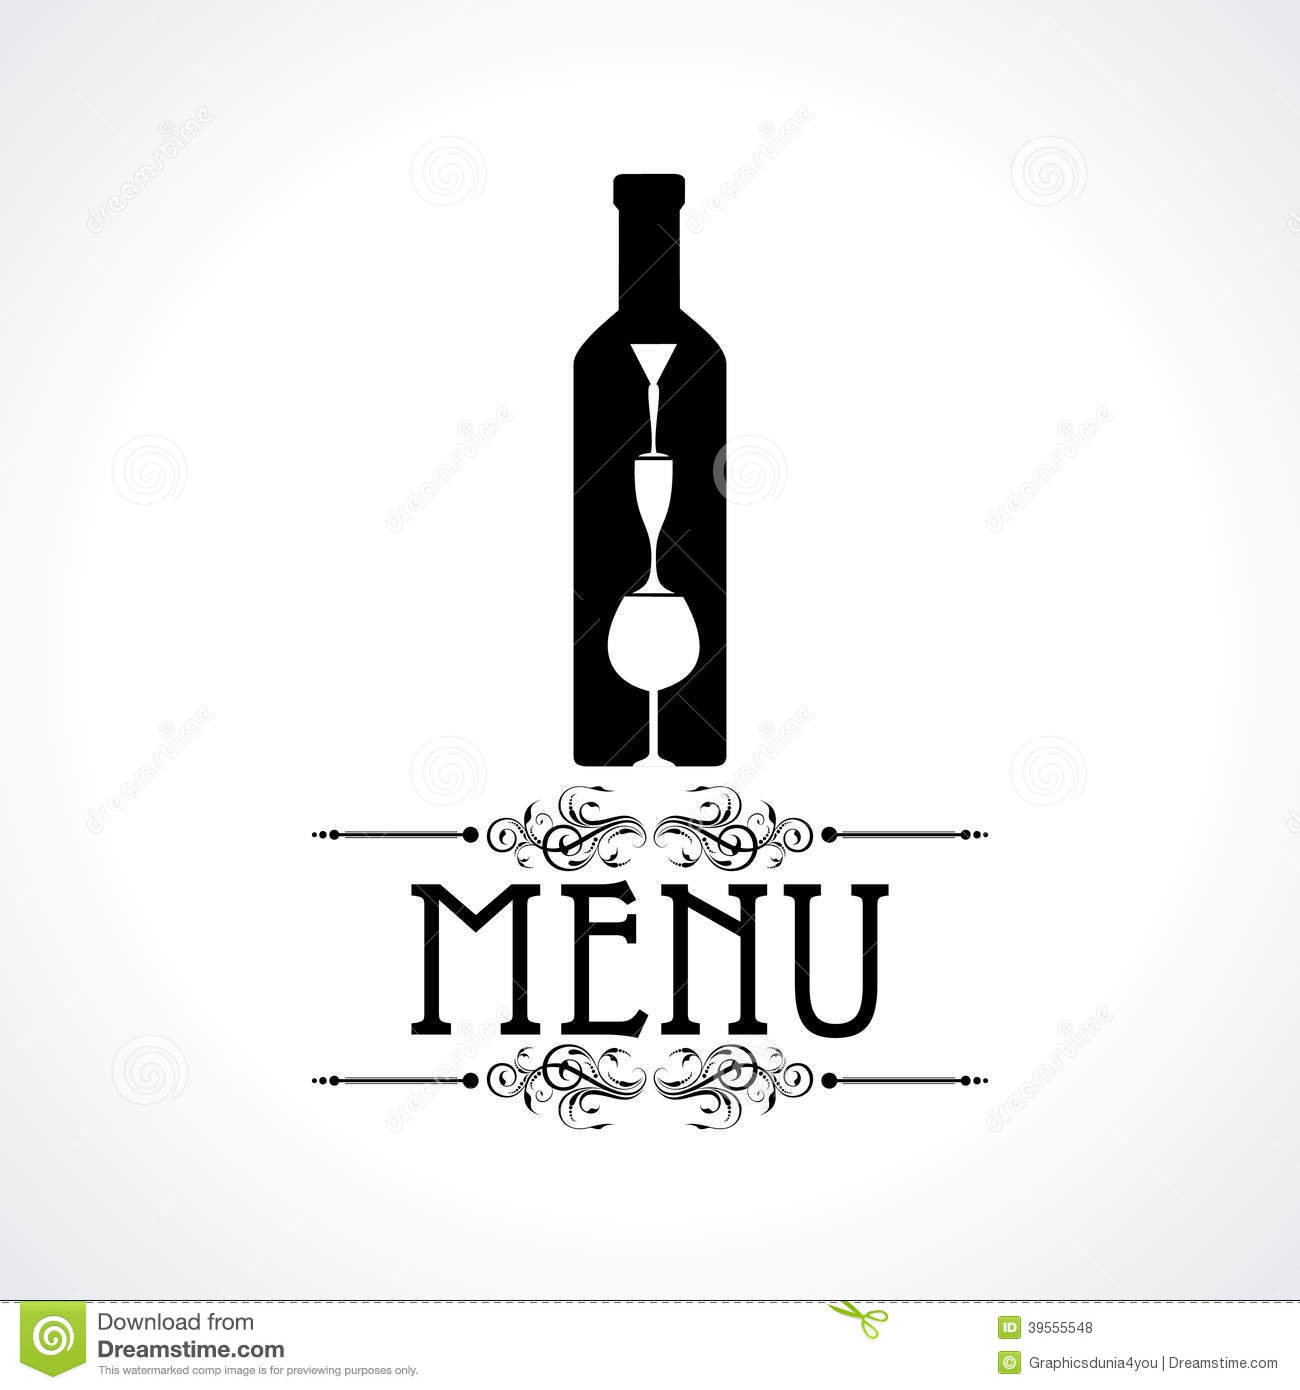 Template For Menu Card With Cutlery Stock Vector - Image: 39555548